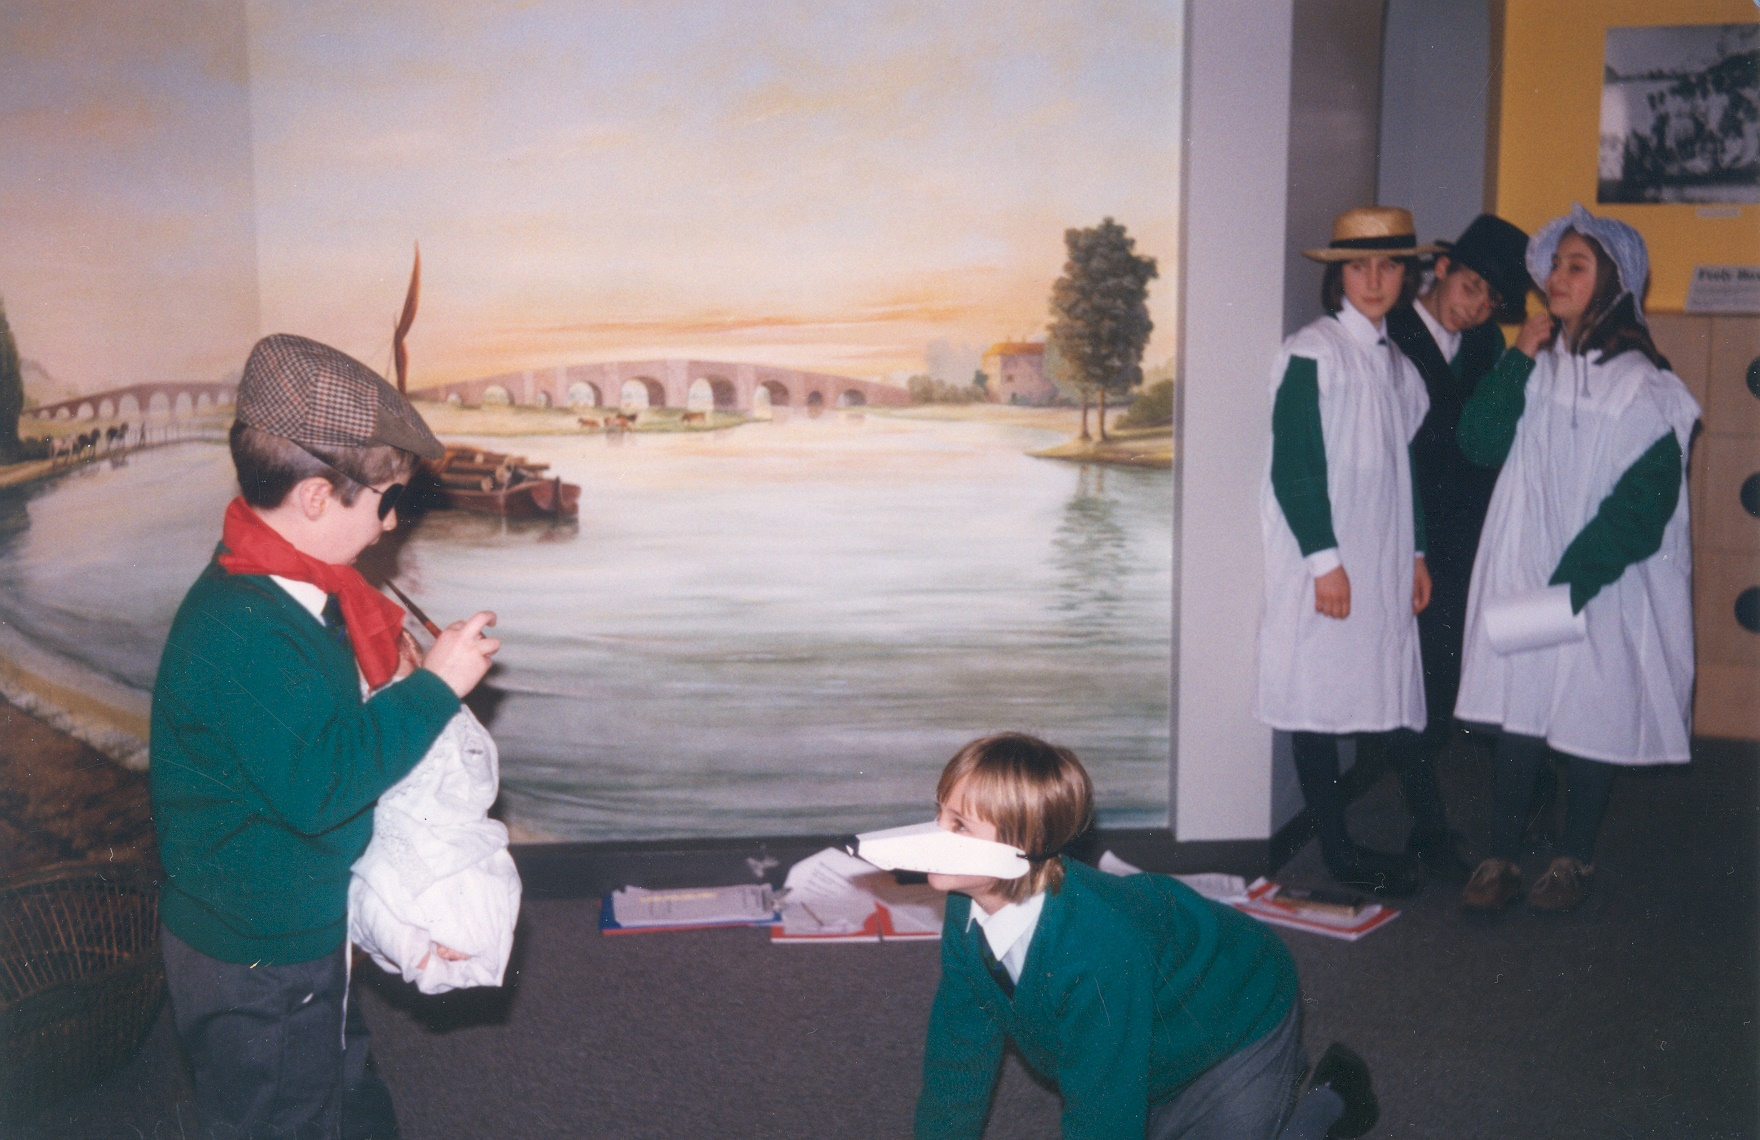 A school visit by Hurst Park School, Molesey to Elmbridge Museum in early 1997. This was the first school visit to the museum that year, and since the major refurbishment.